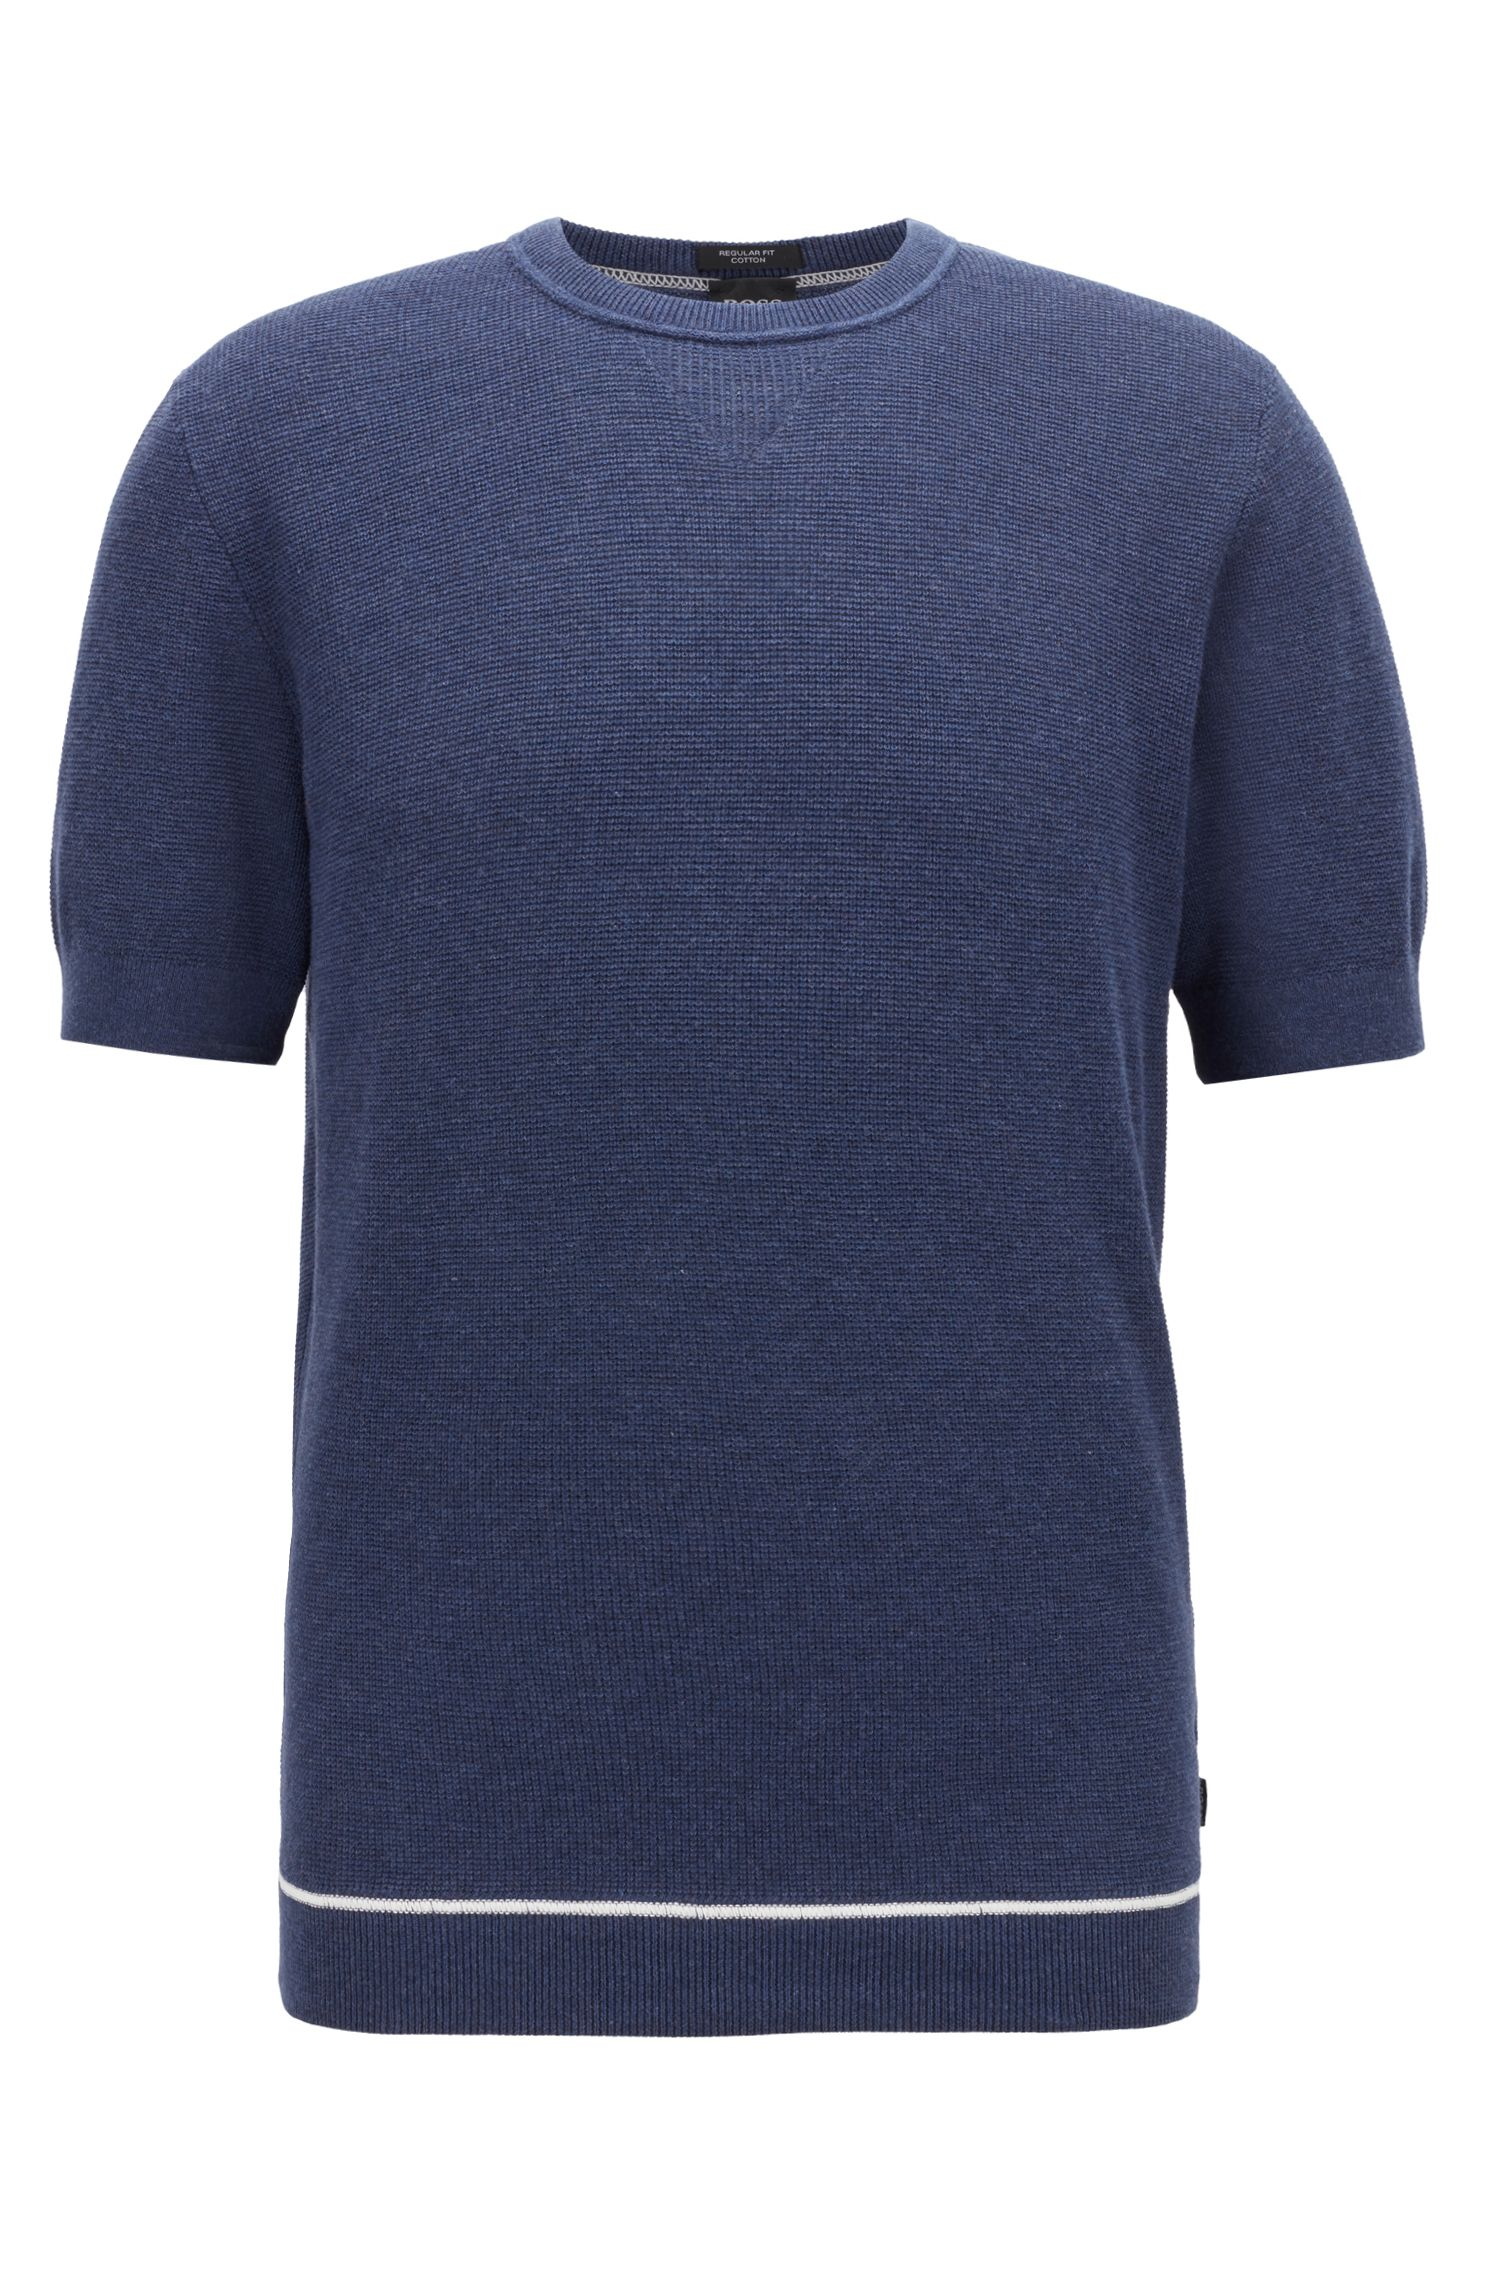 Short-sleeved sweater with contrast flatlock stitching, Open Blue